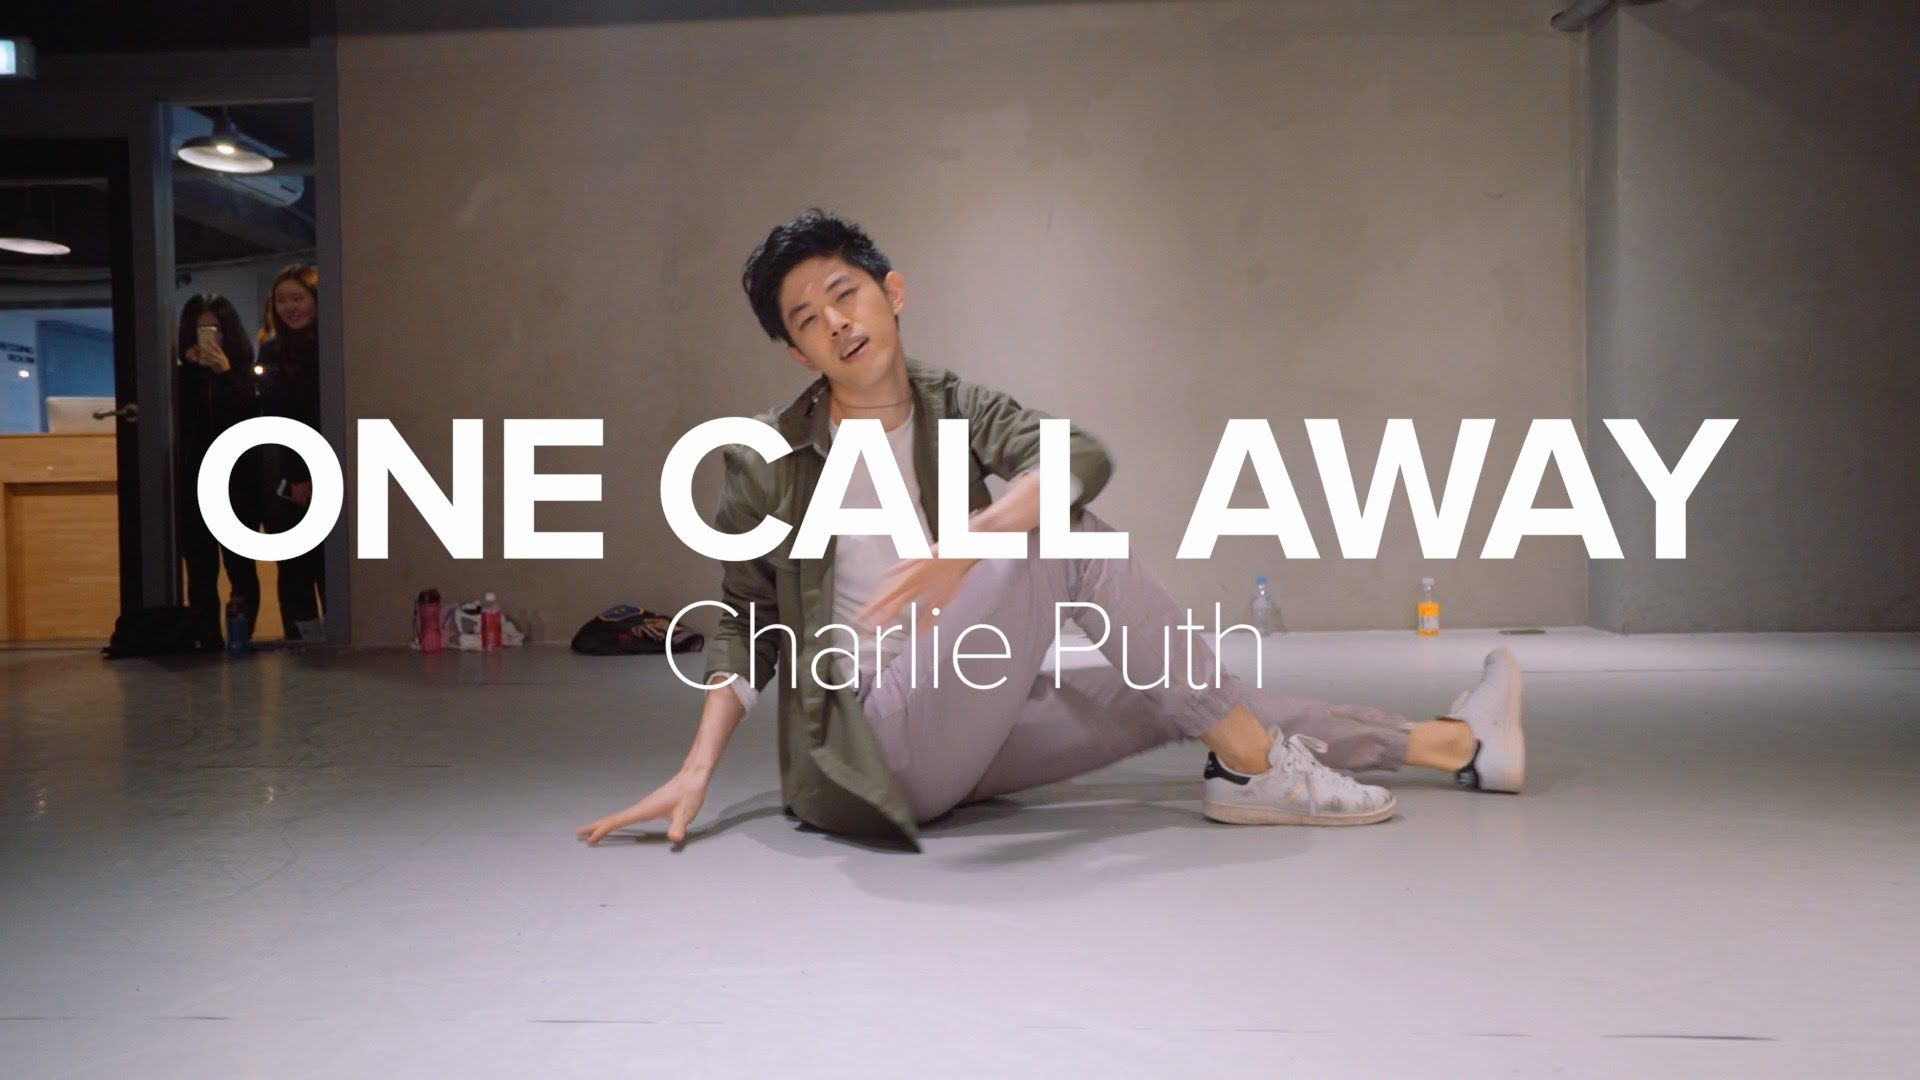 One Call Away Charlie Puth Bongyoung Park Choreography